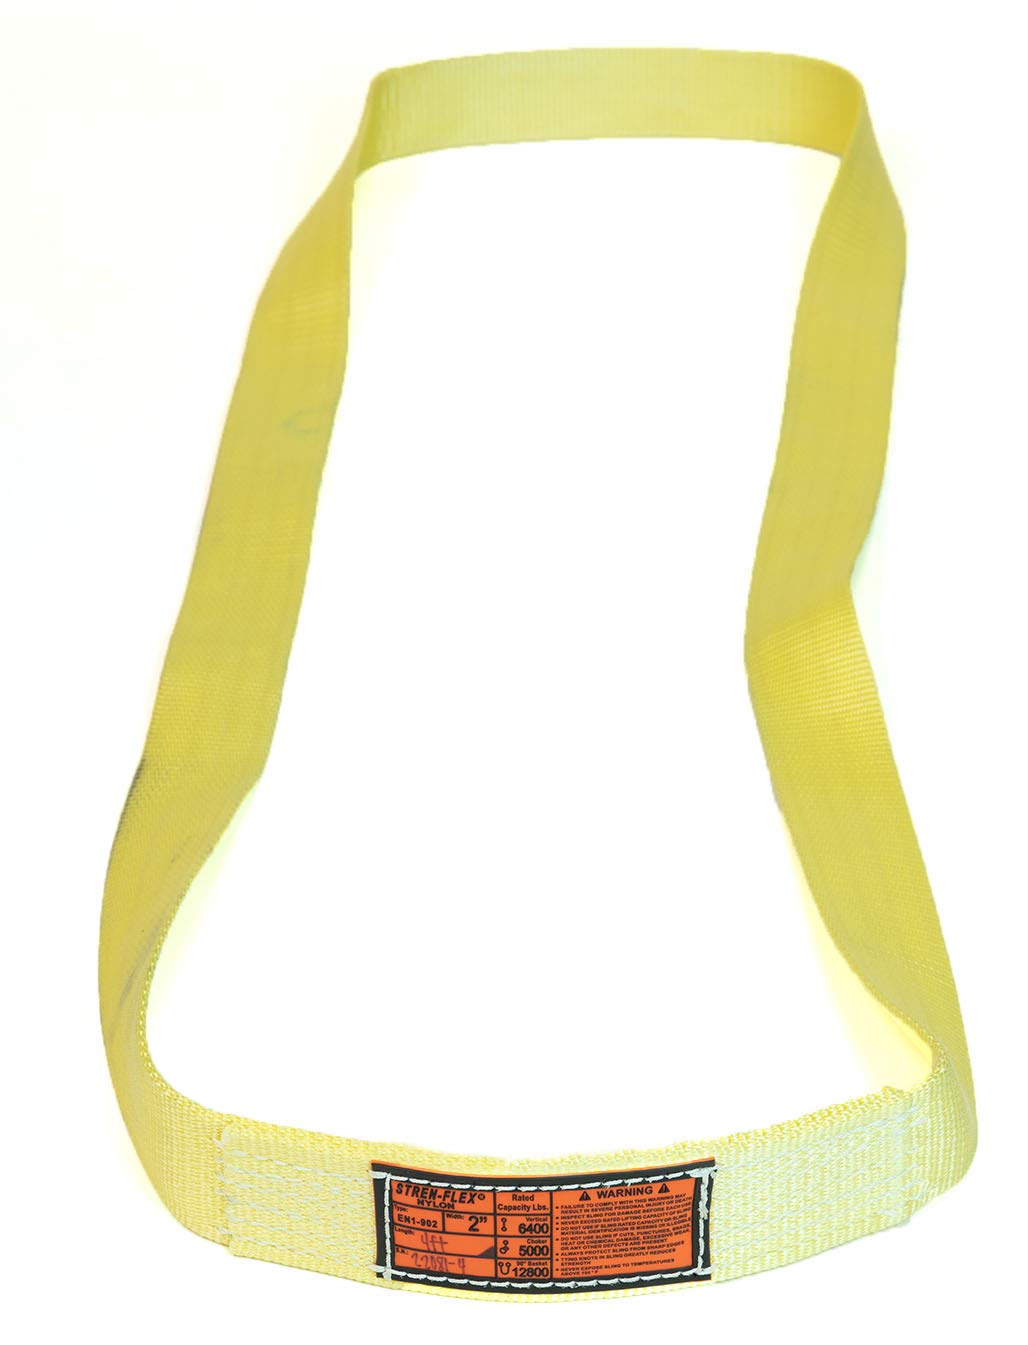 Stren-Flex Endless Poly Synthetic Sling